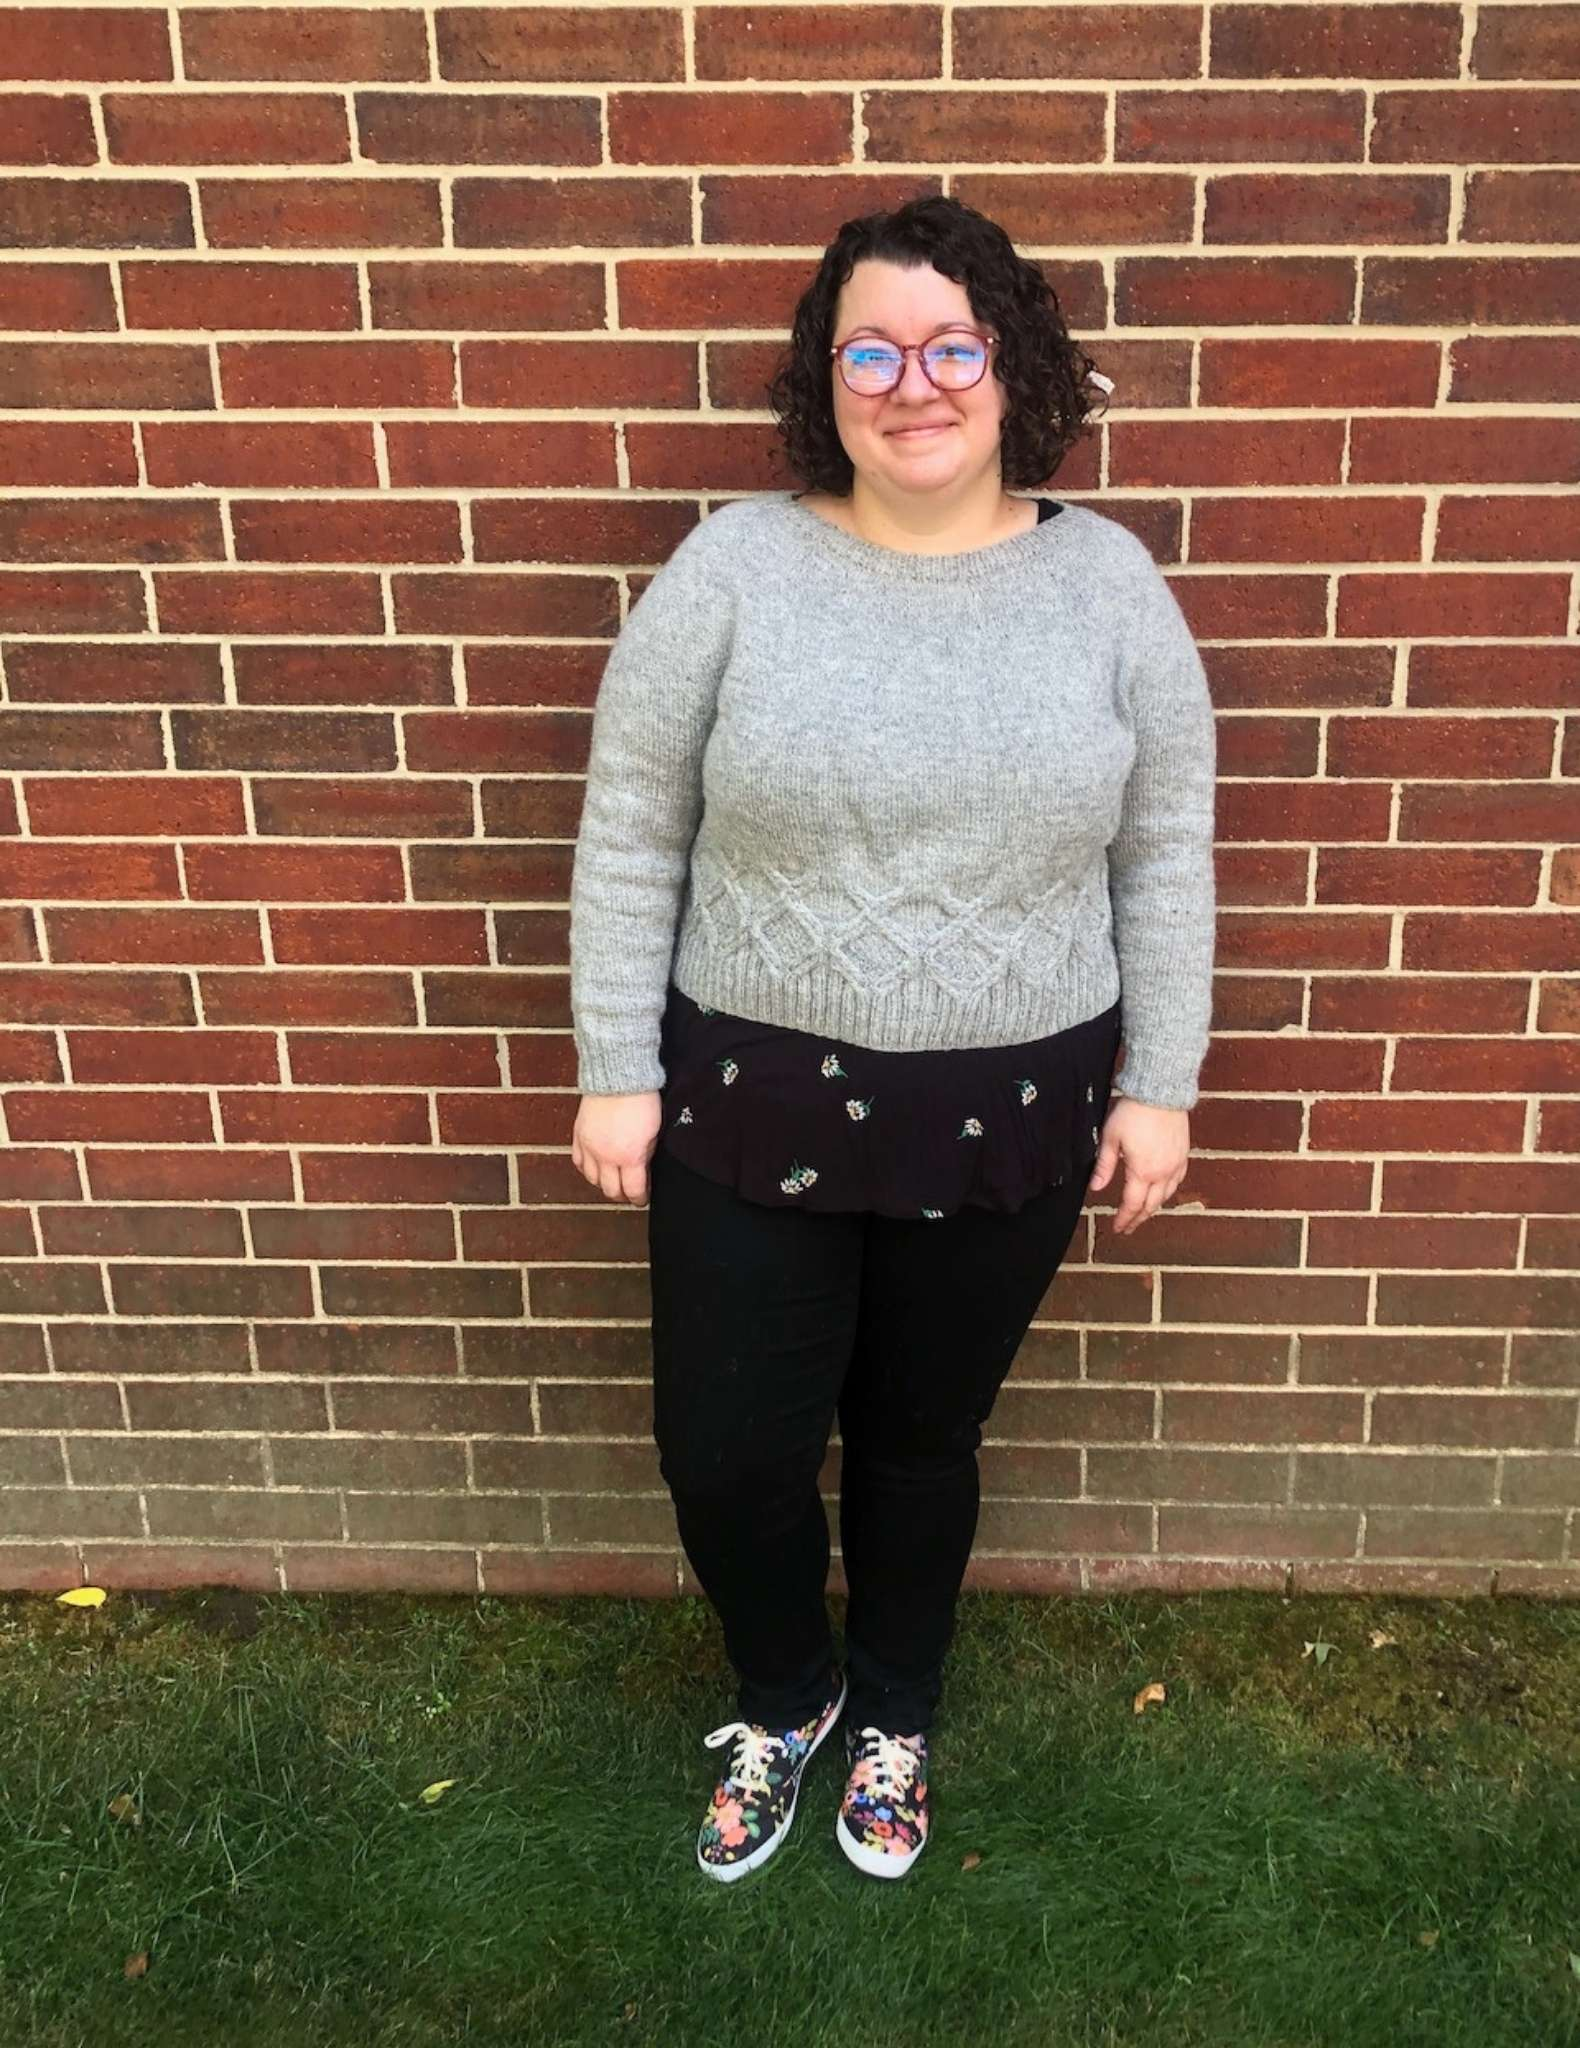 A white plus-size woman wears a natural colour cabled sweater and stands in front of a brick wall